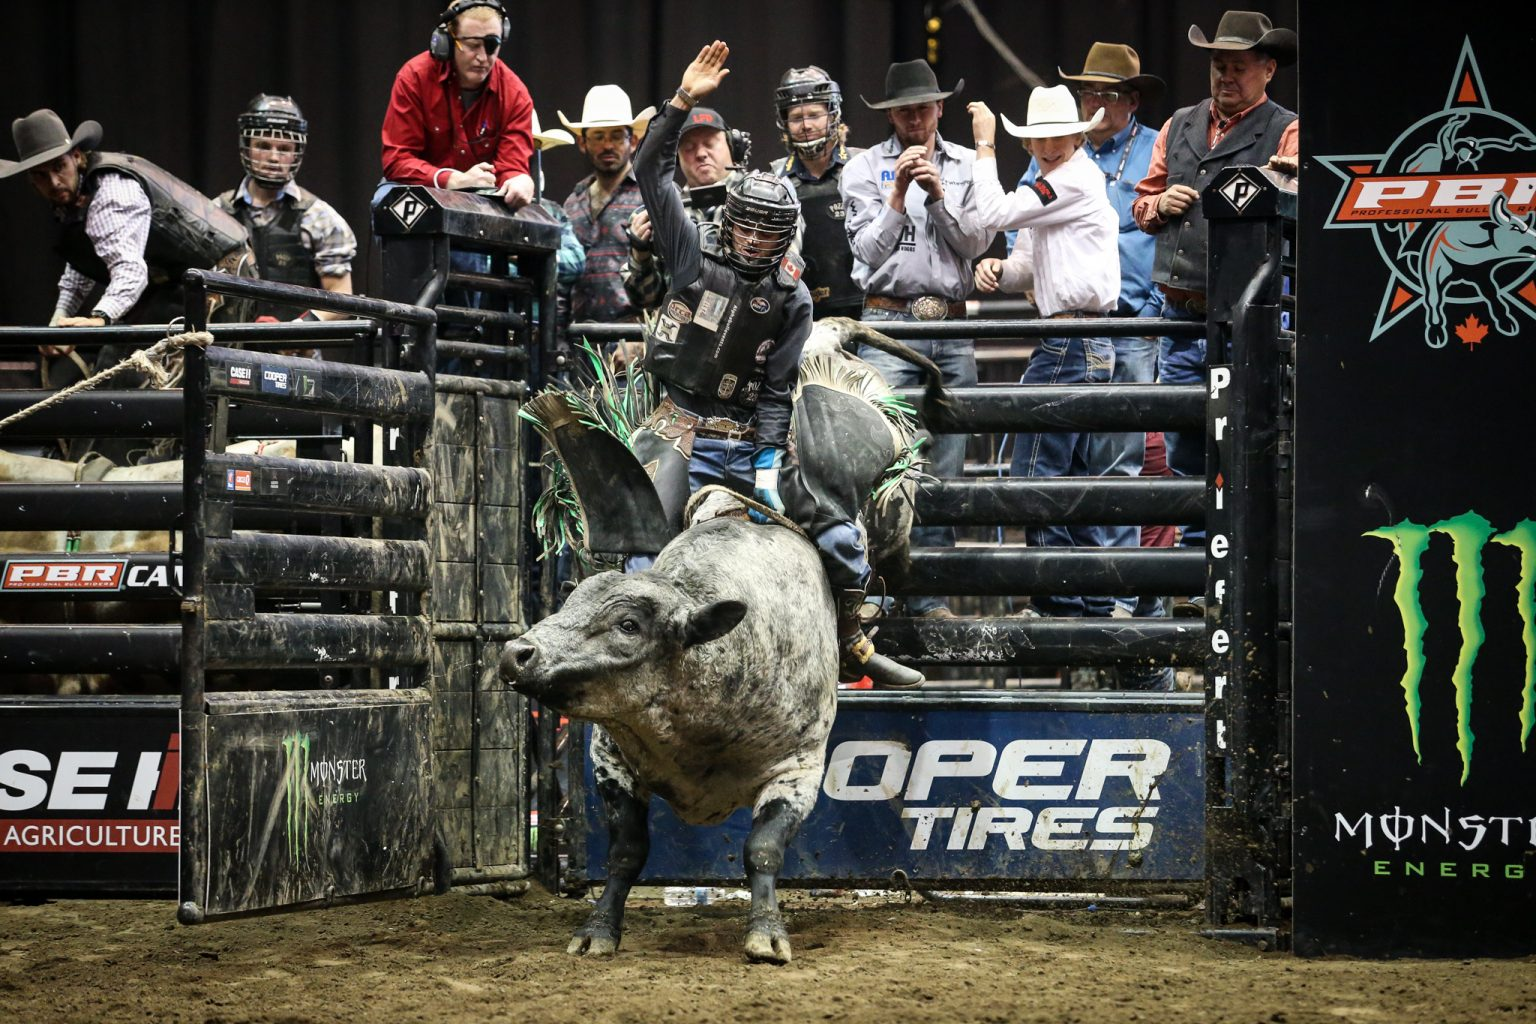 Lonnie West Claims Abbotsford Title In First Pbr Victory